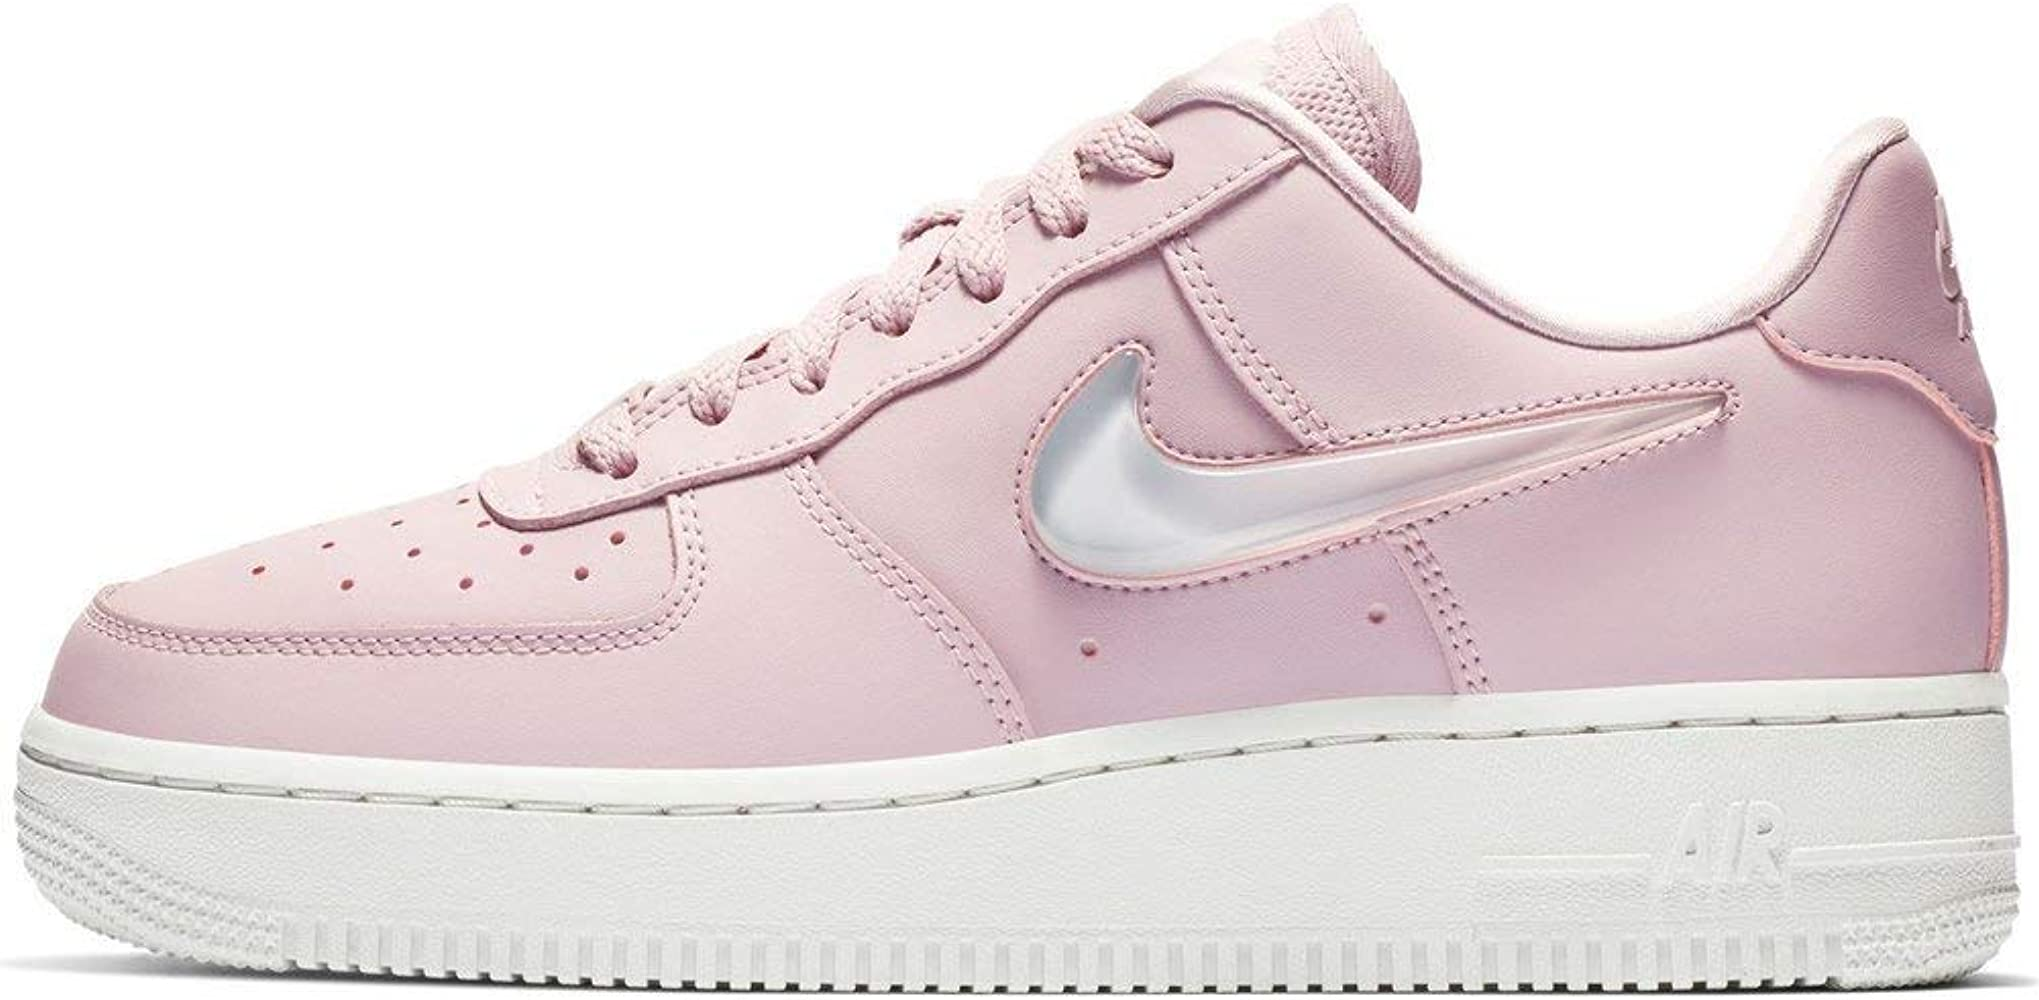 air force one nike mujer rosa